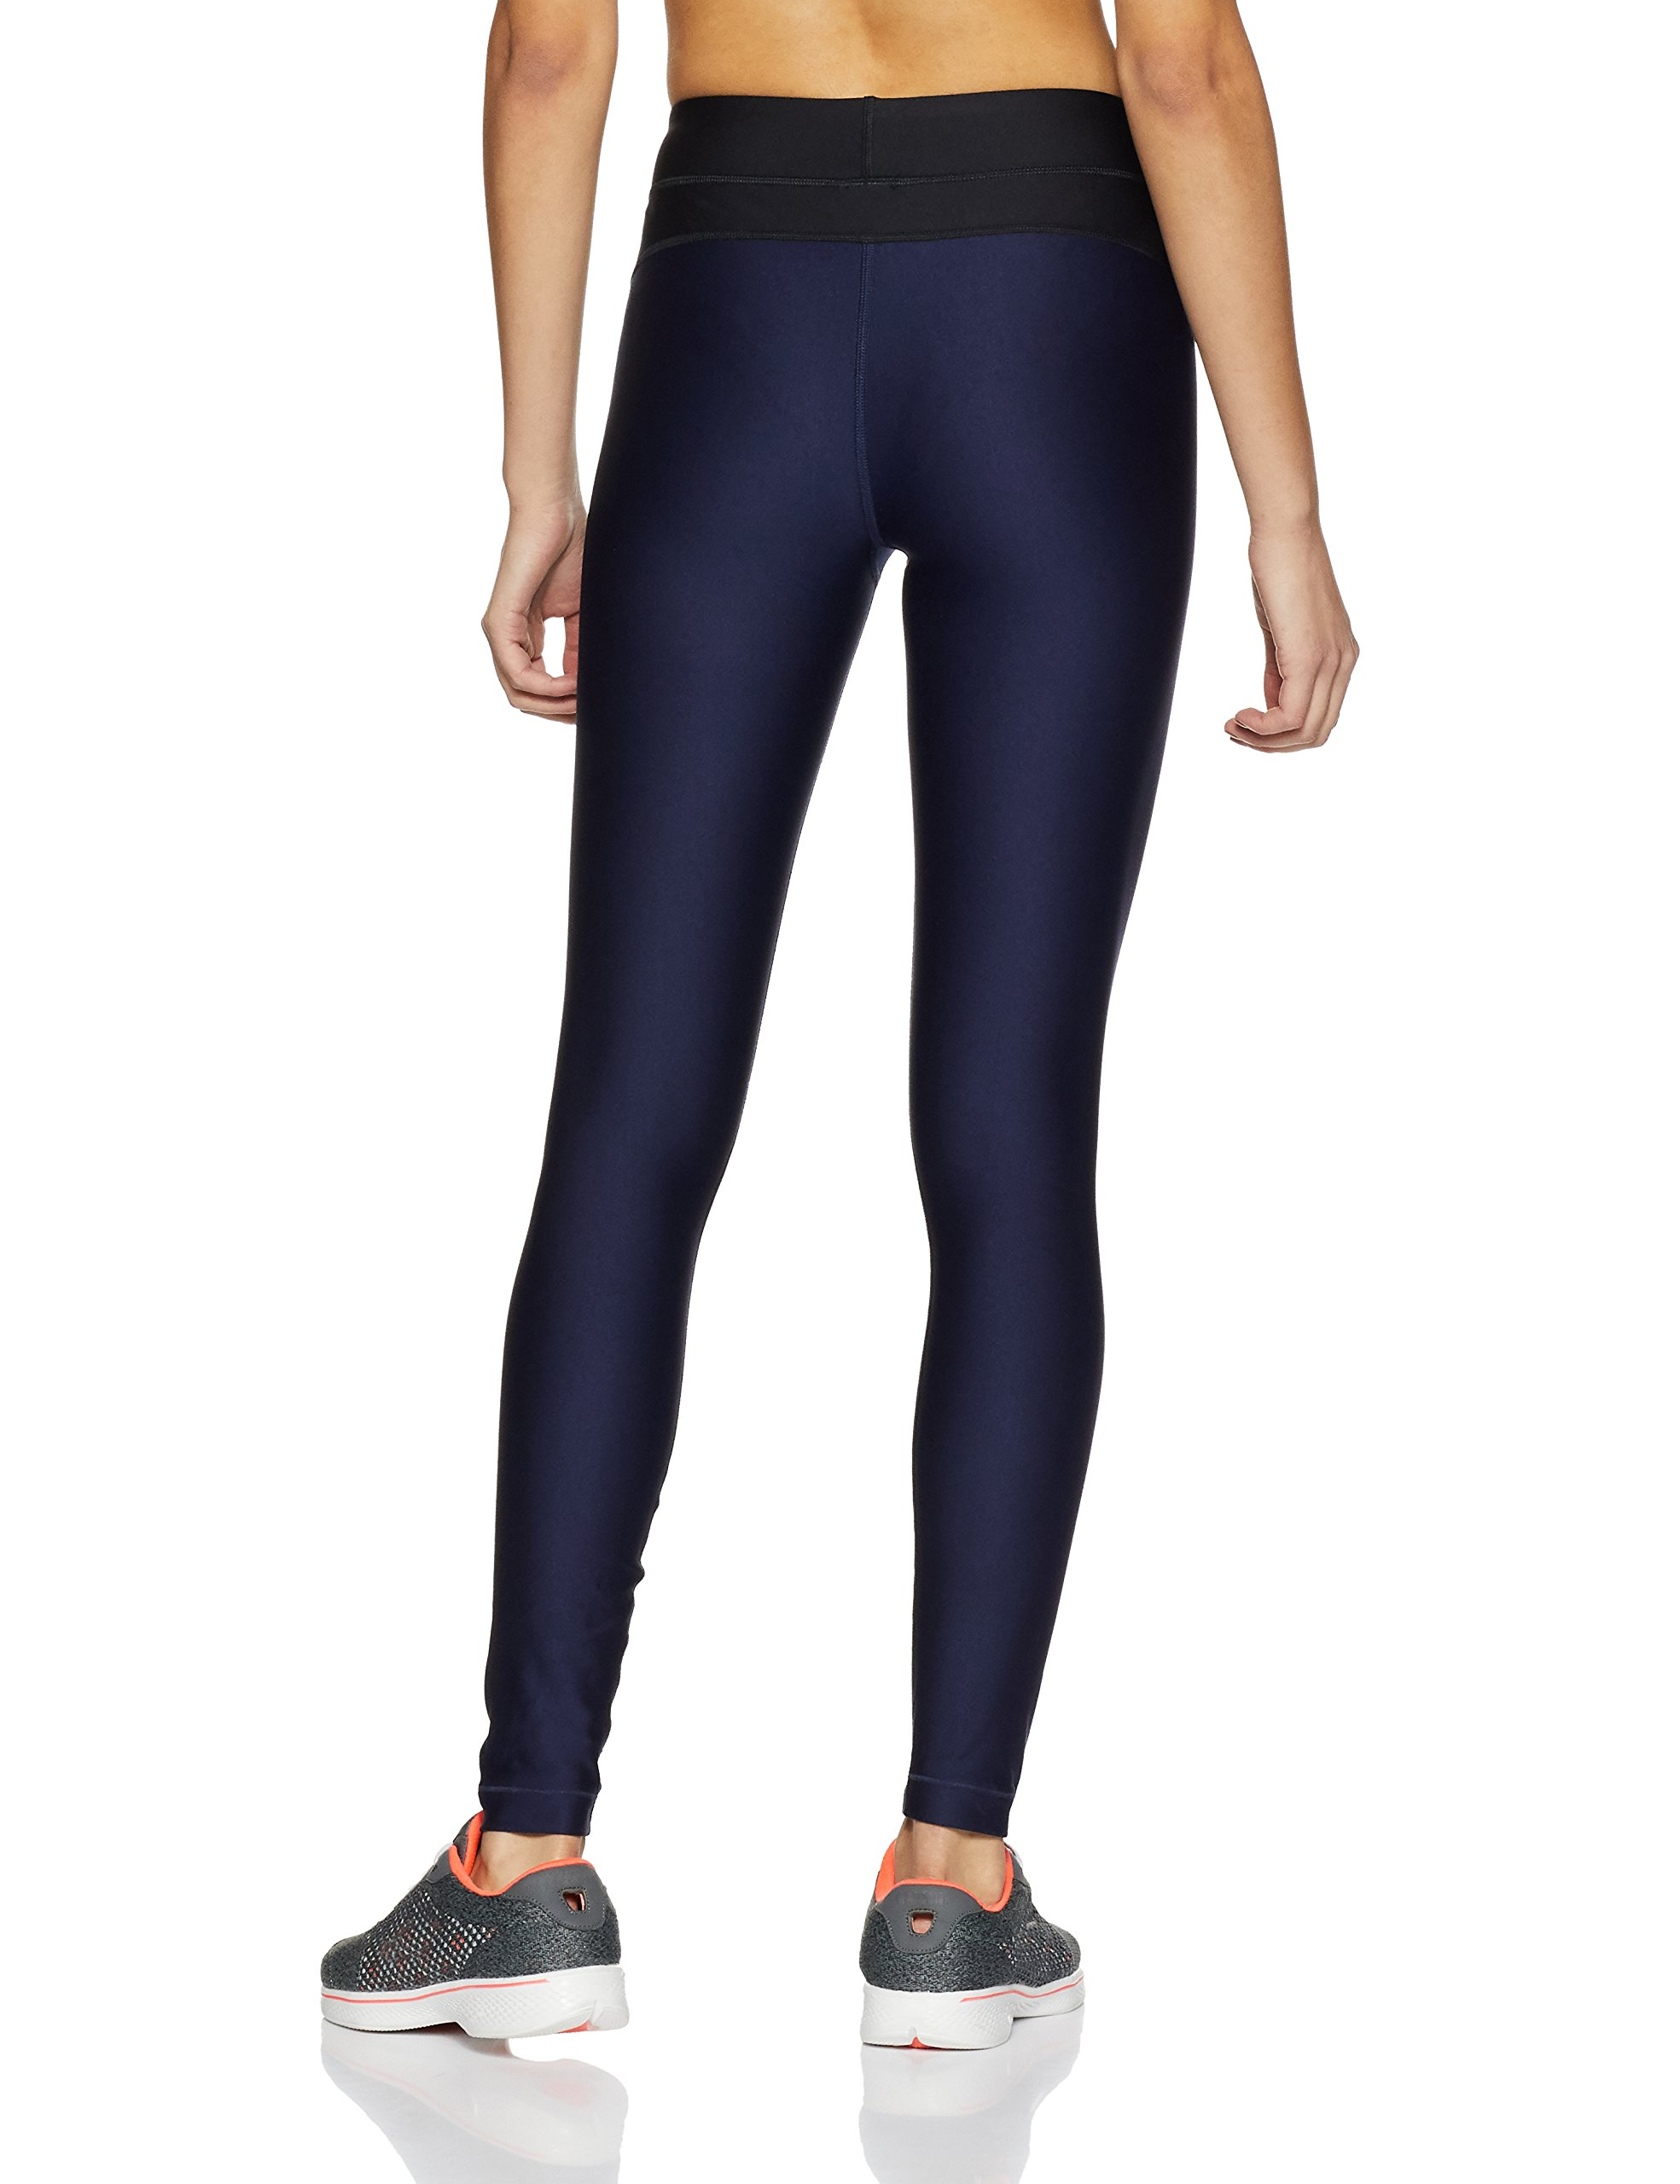 Under Armour Womens Heatgear Armour Leggings, Midnight Navy /Metallic Silver, XX-Large by Under Armour (Image #2)